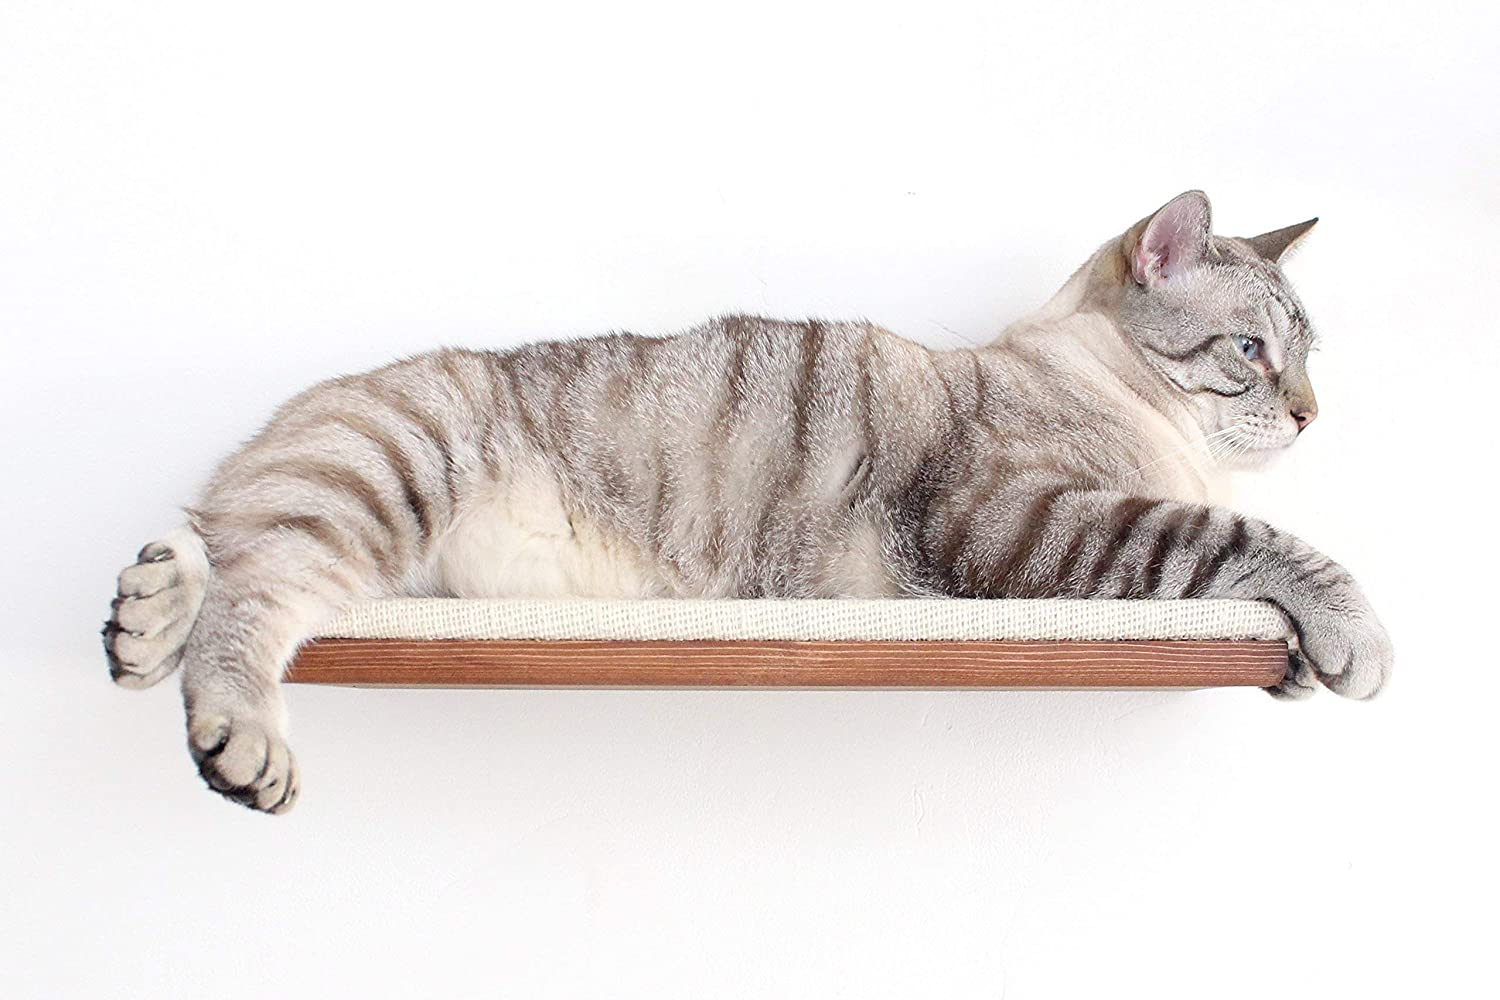 CatastrophiCreations 18 Shelf with Burlap Fabric - Handcrafted Wall-mounted Cat Furniture